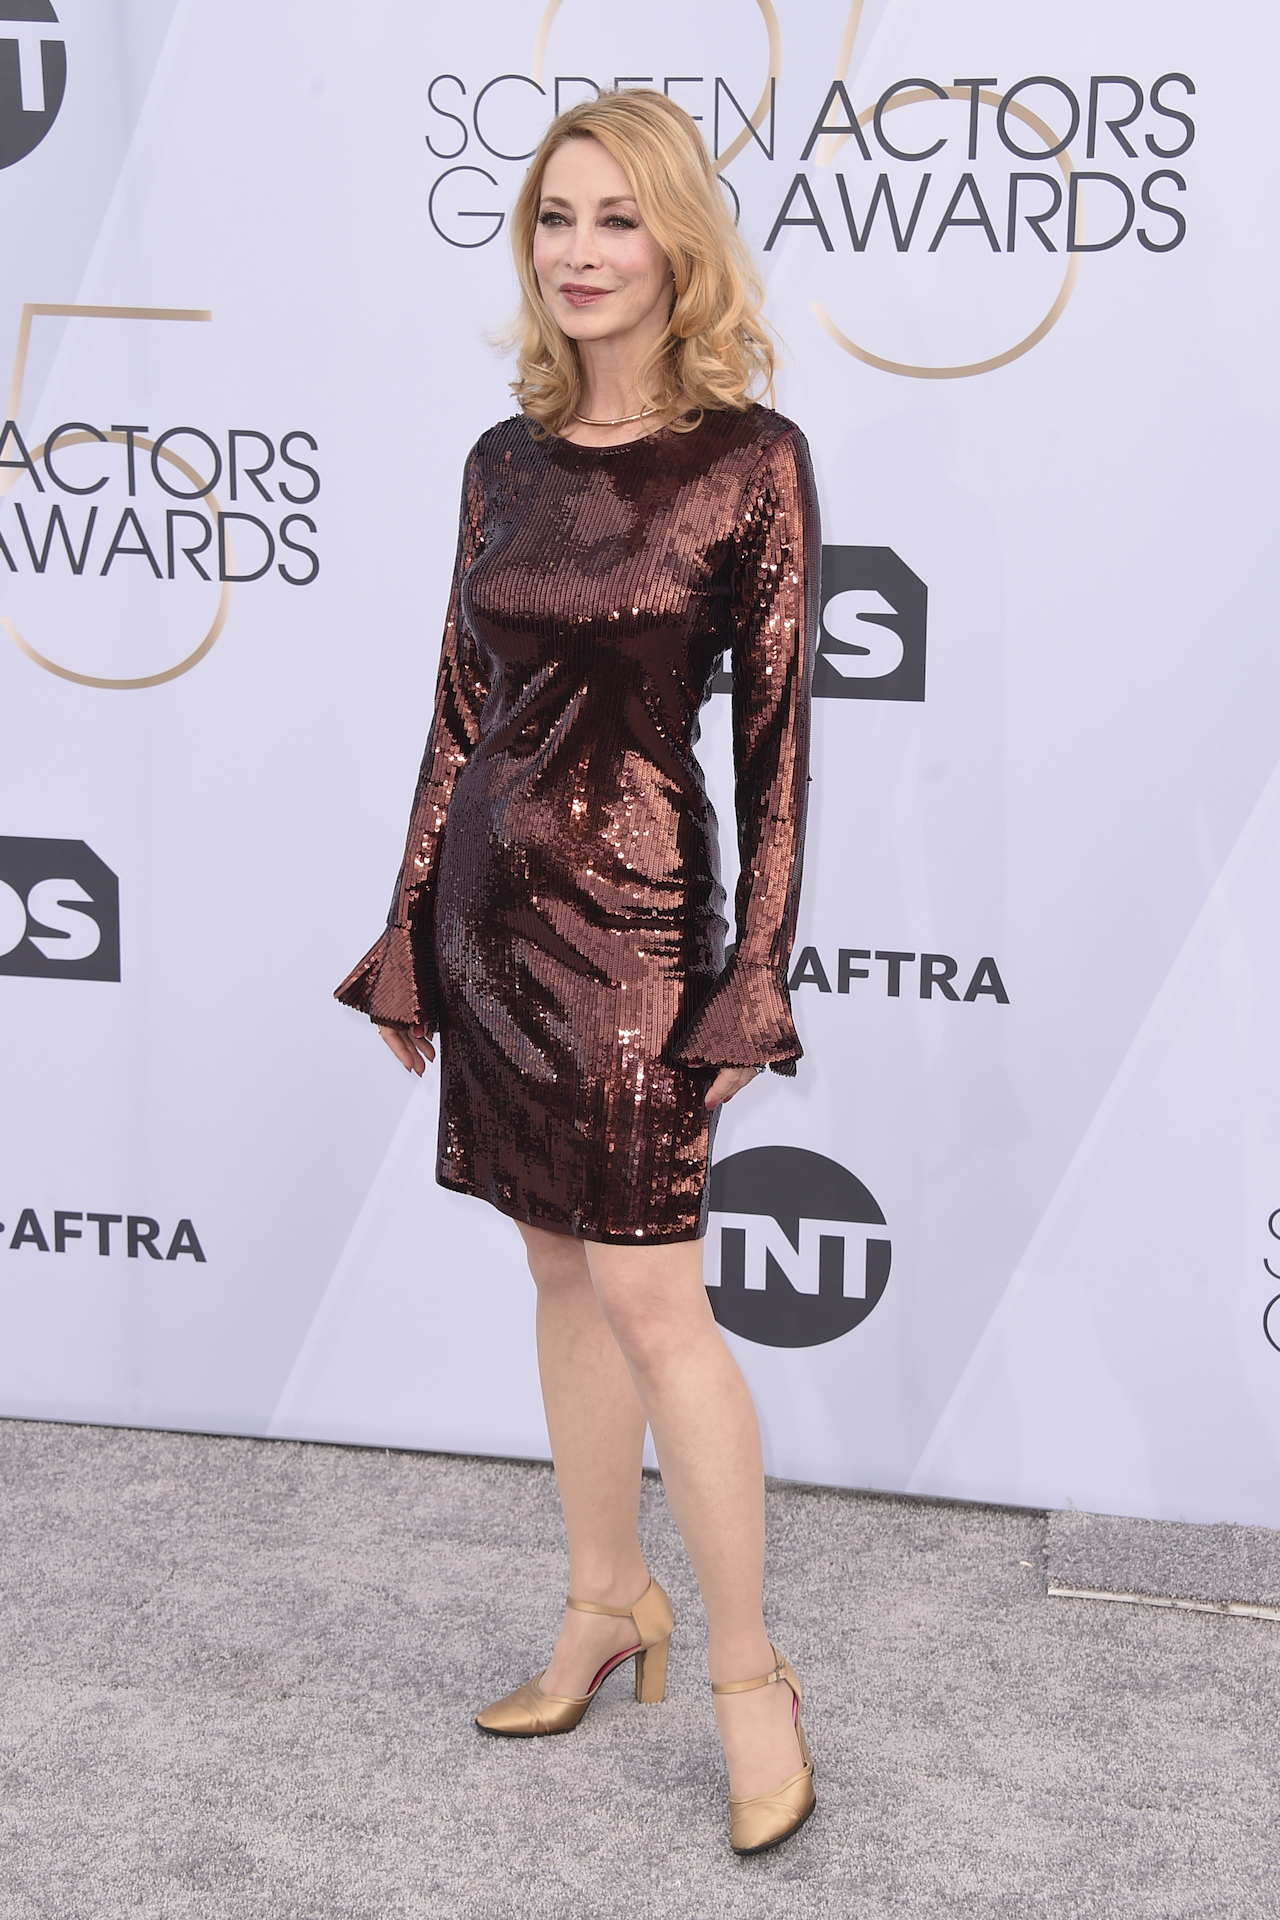 "<div class=""meta image-caption""><div class=""origin-logo origin-image ap""><span>AP</span></div><span class=""caption-text"">Sharon Lawrence arrives at the 25th annual Screen Actors Guild Awards at the Shrine Auditorium & Expo Hall on Sunday, Jan. 27, 2019, in Los Angeles. (Jordan Strauss/Invision/AP)</span></div>"